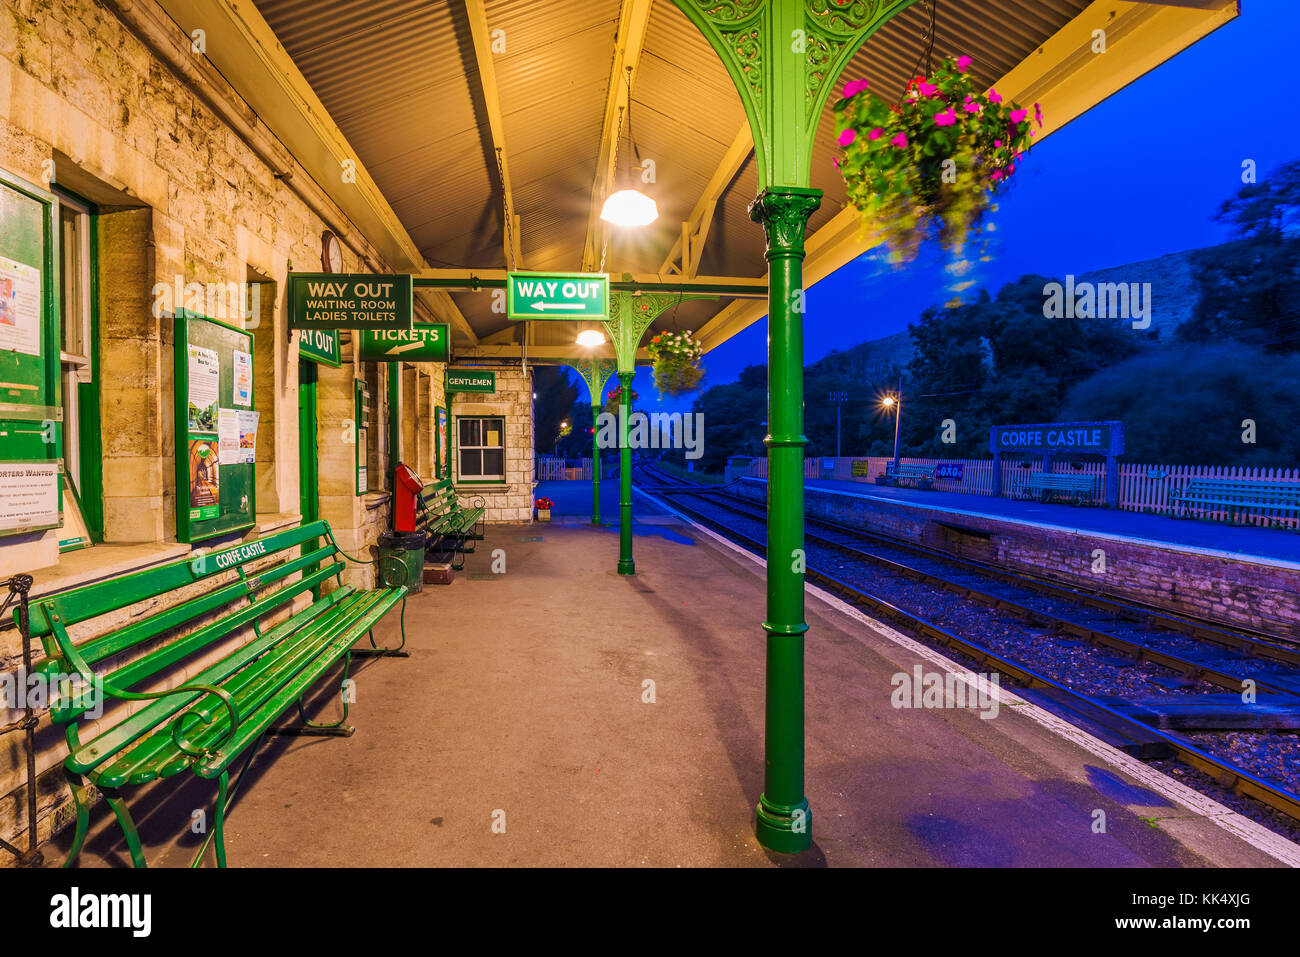 CORFE, UNITED KINGDOM - SEPTEMBER 08: This is the waiting platform of Corfe railway station which is well known - Stock Image